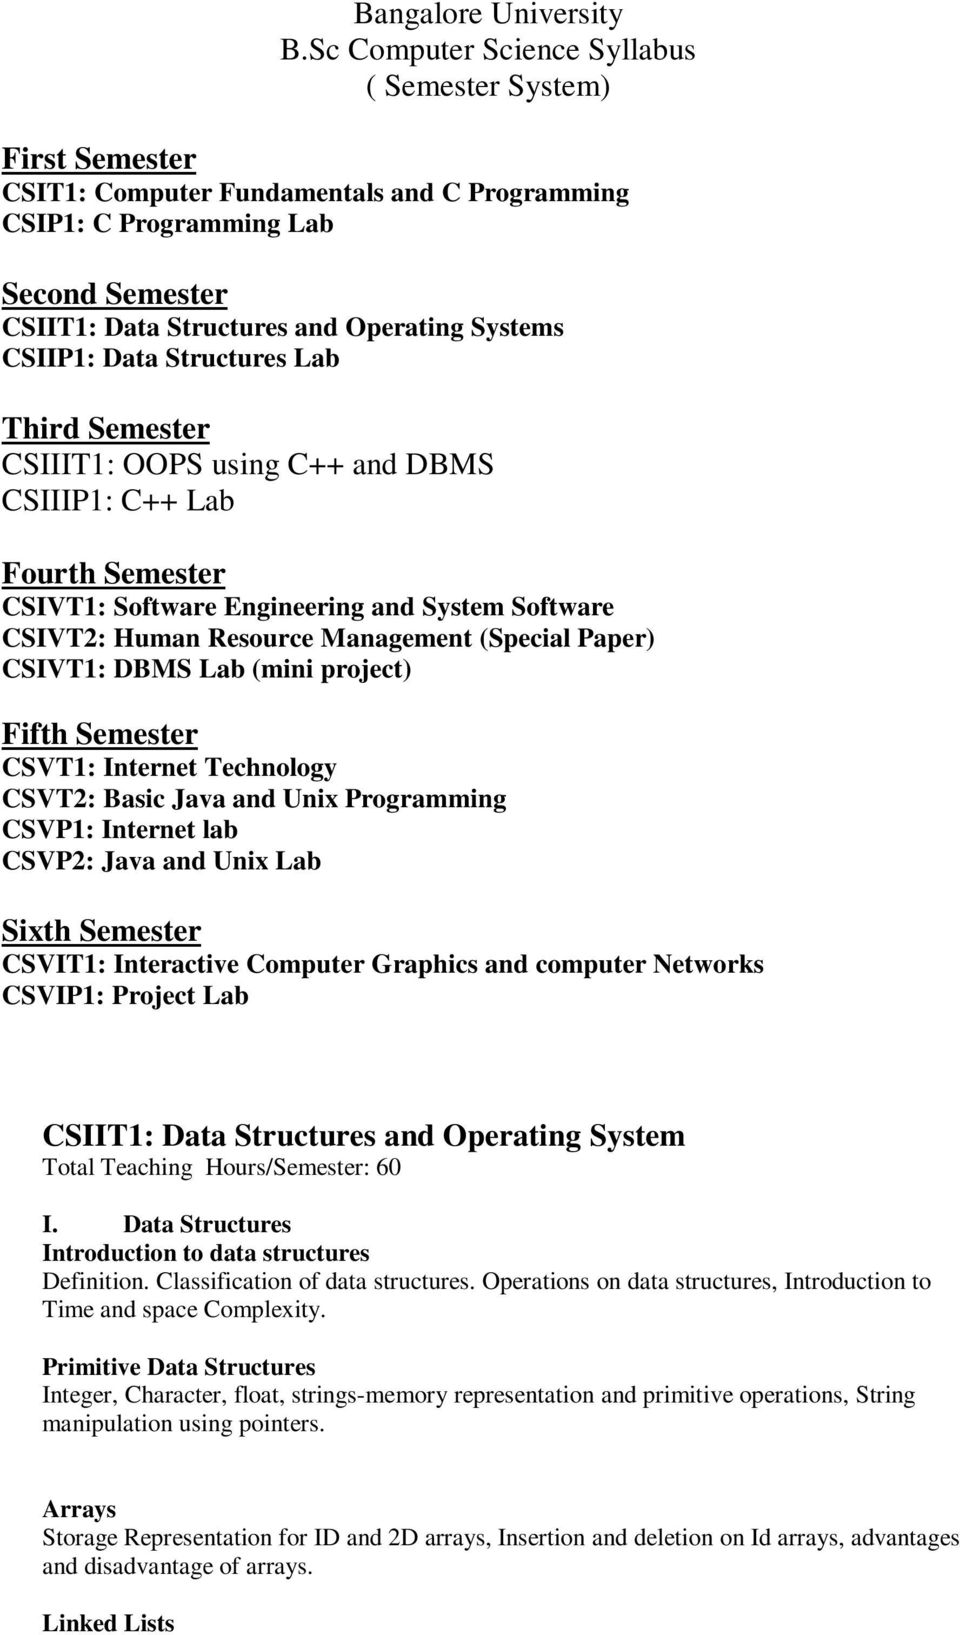 CSIIP1: Data Structures Lab Third Semester CSIIIT1: OOPS using C++ and DBMS CSIIIP1: C++ Lab Fourth Semester CSIVT1: Software Engineering and System Software CSIVT2: Human Resource Management